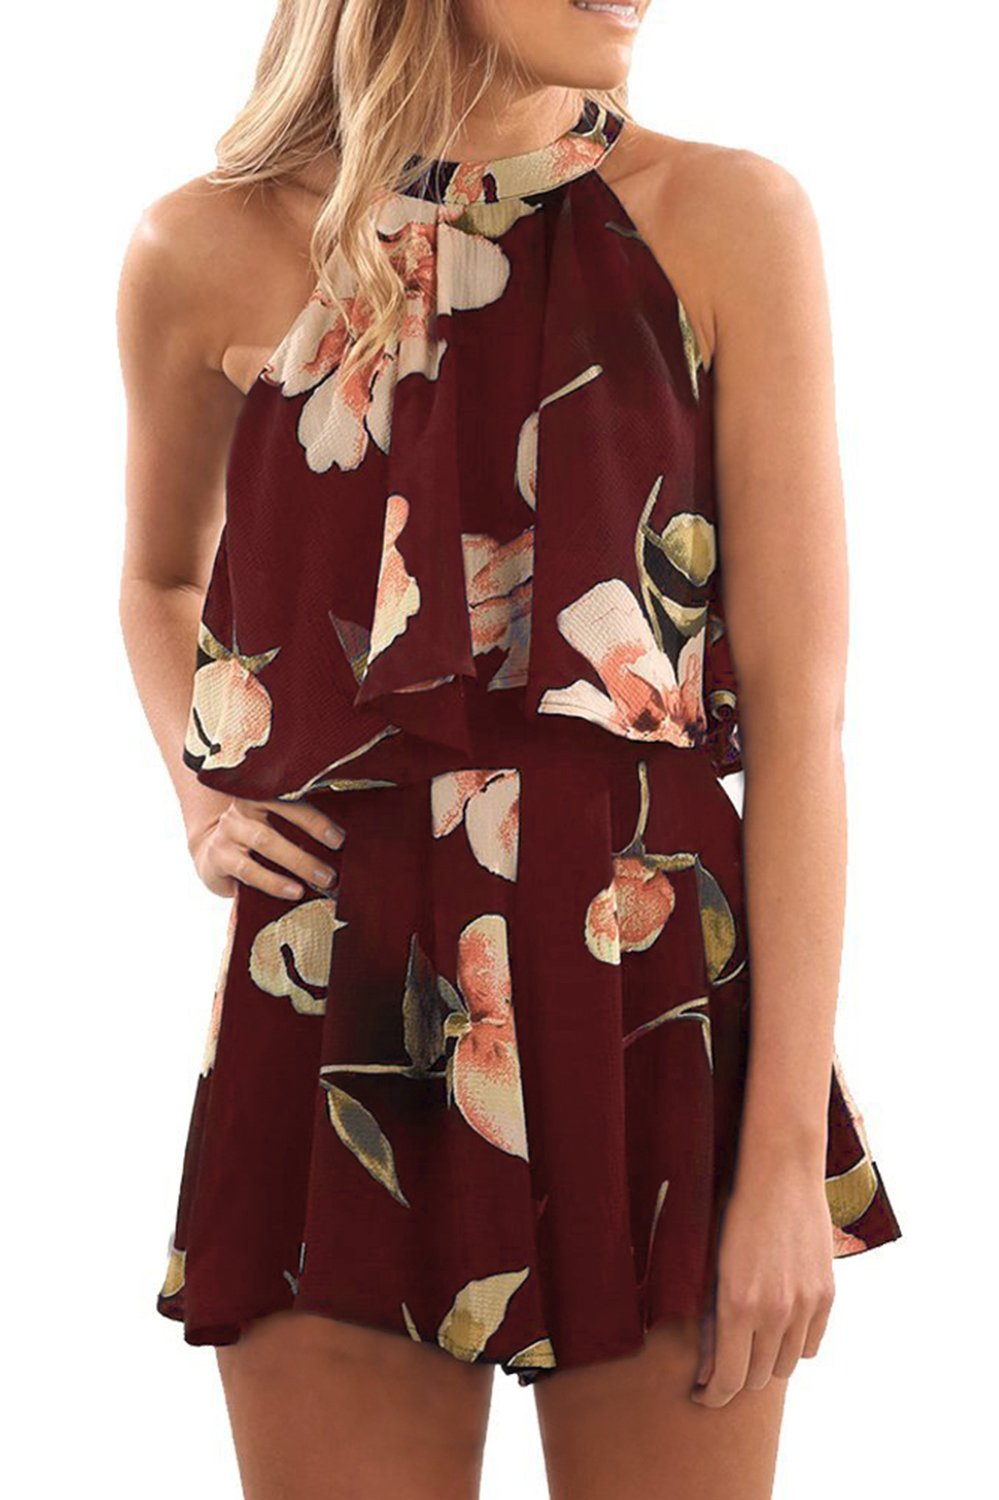 Pxmoda Women's Floral Print High Neck Pleated Romper Dress Overlay Jumpsuit (M, Red)